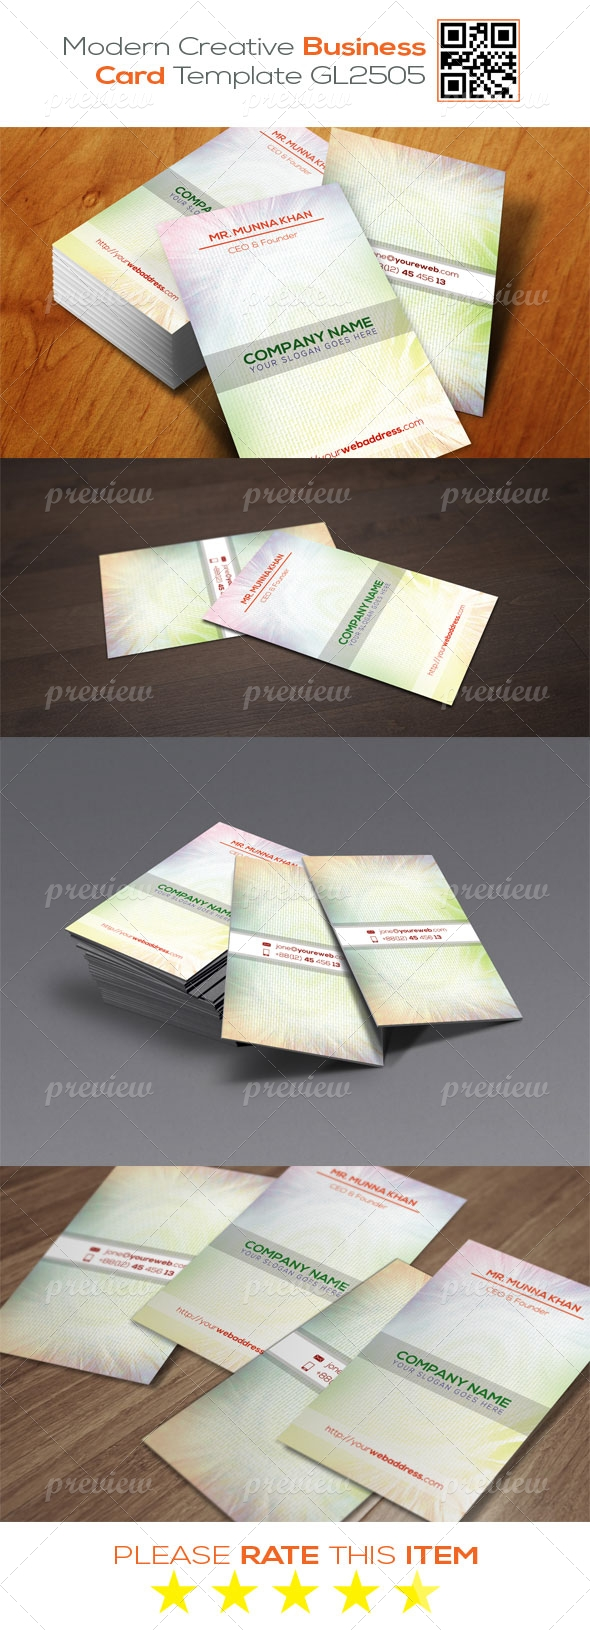 Modern Creative Business Card Template GL2505